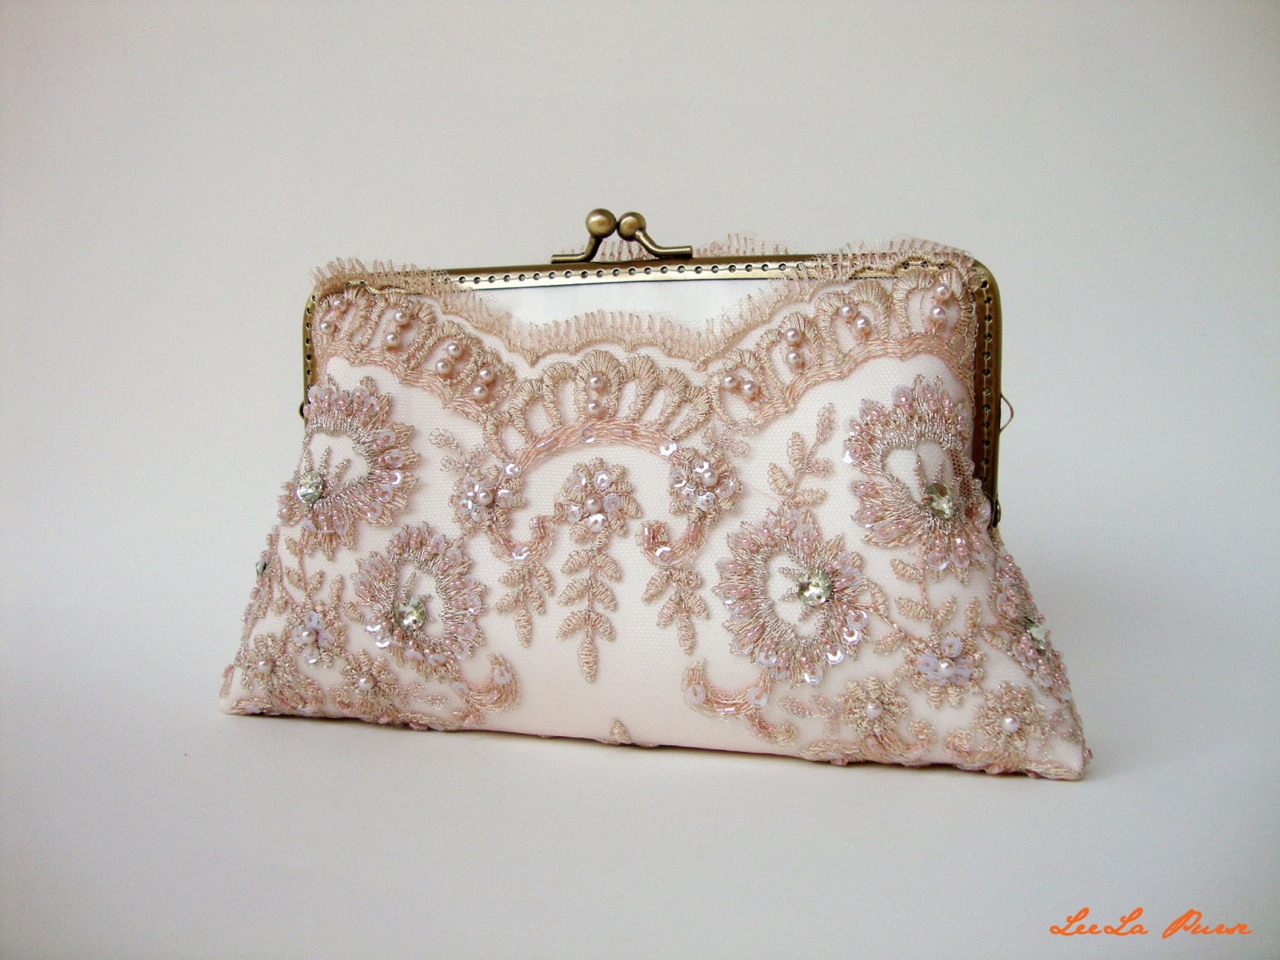 This is a small yet stylish wallet it goes really nice with the dress